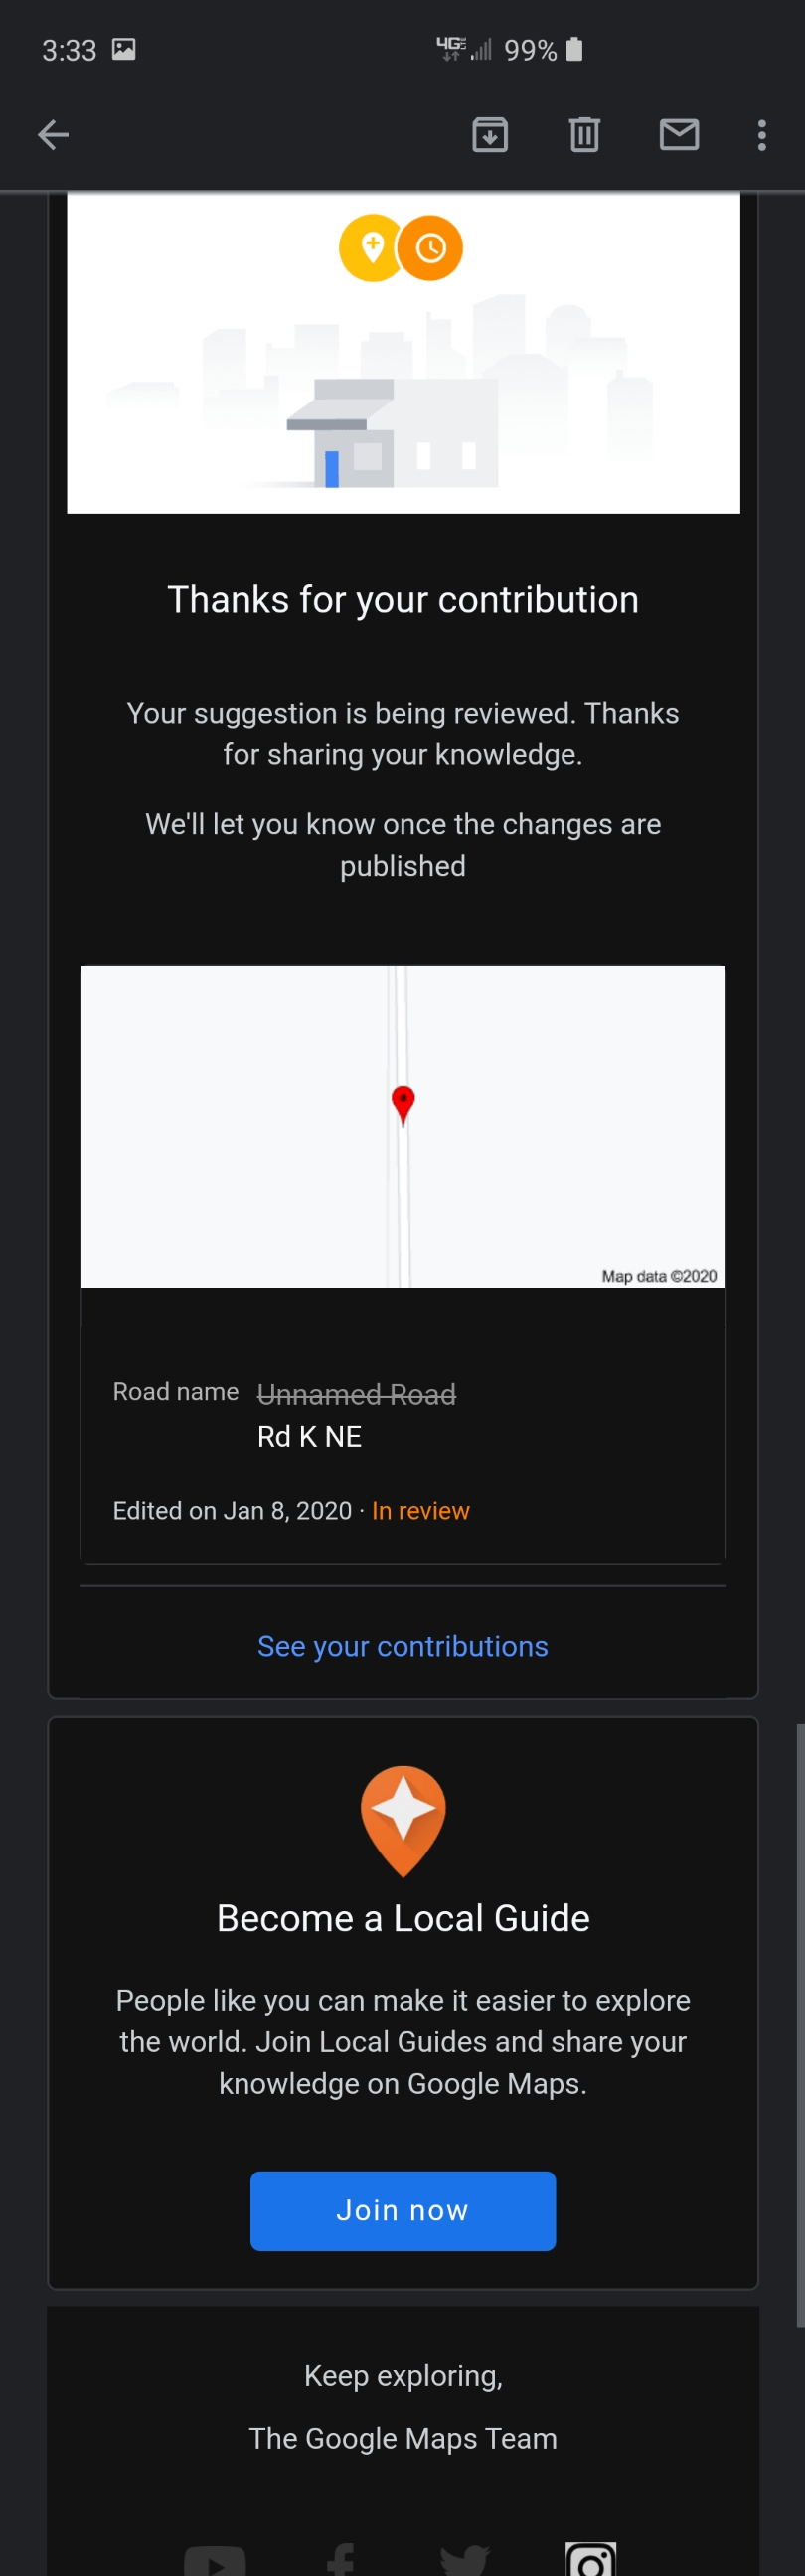 Road Edit Pending For Over A Month Google Maps Munity